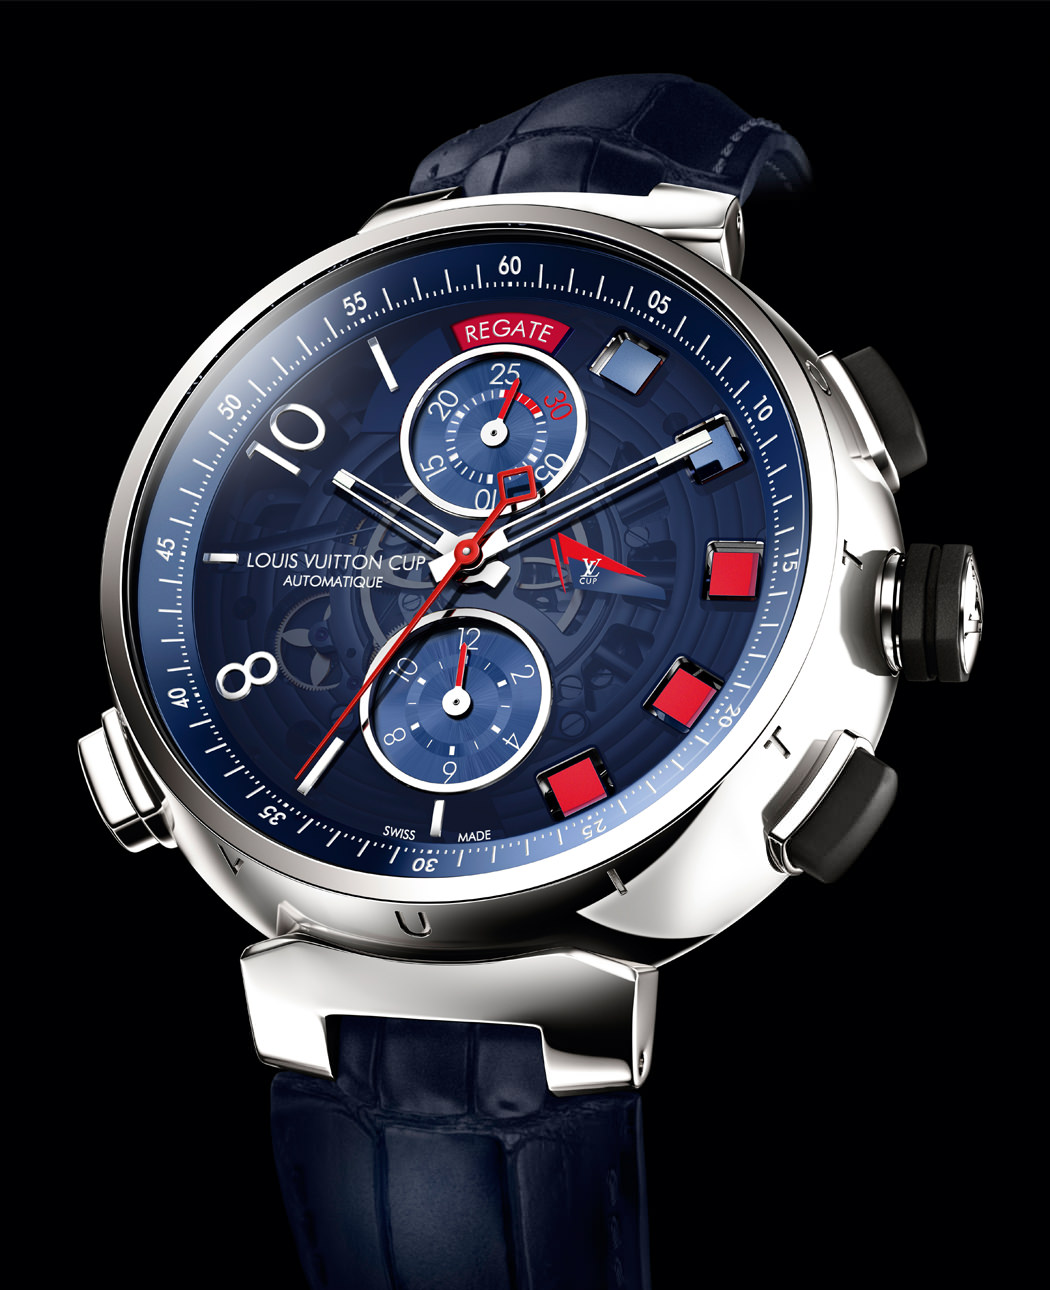 TAMBOUR SPIN TIME REGATTA de Louis Vuitton